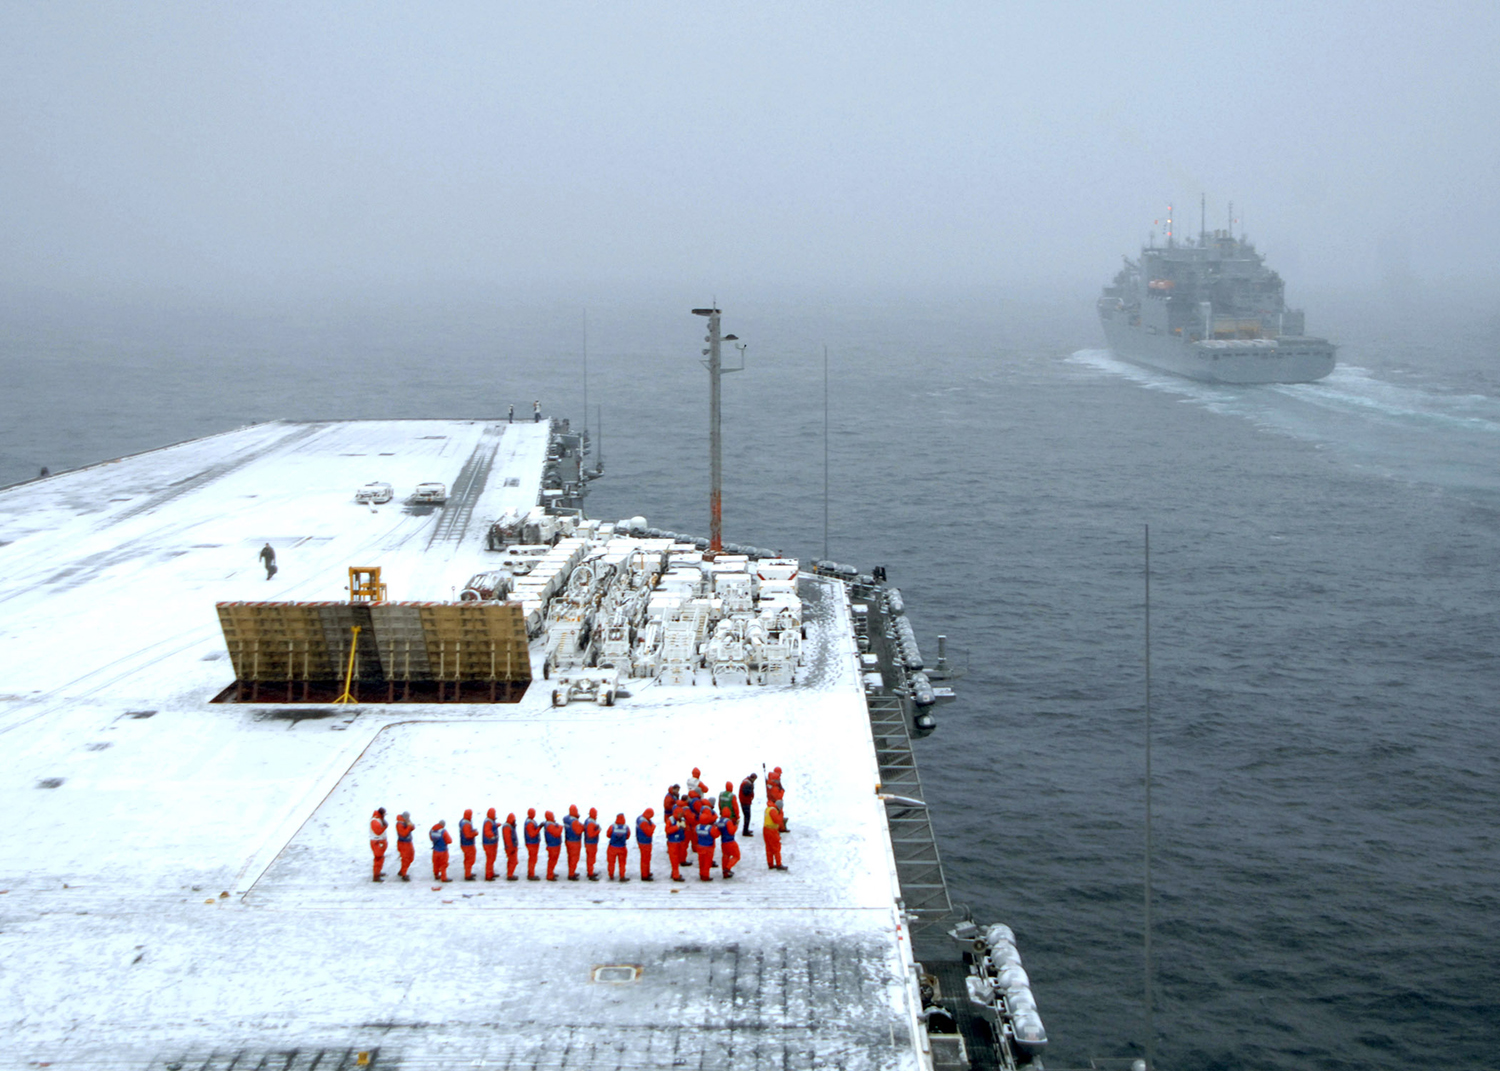 Sailors Make Snow Angels On Deck Of Supercarrier During Storm - The